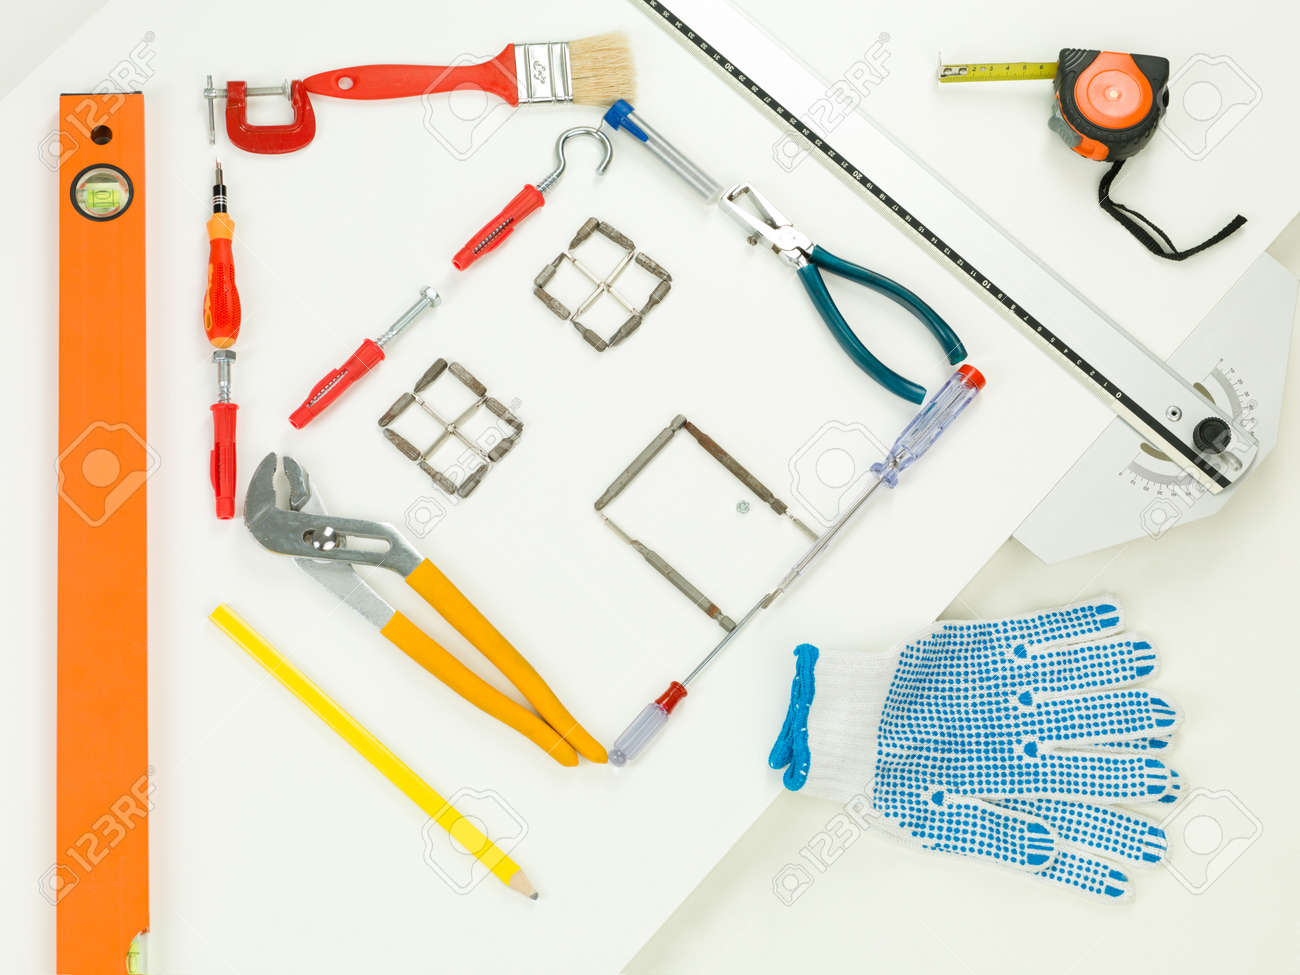 Shape Of House Made With Household And Construction Tools On Wiring White Background Perspective View